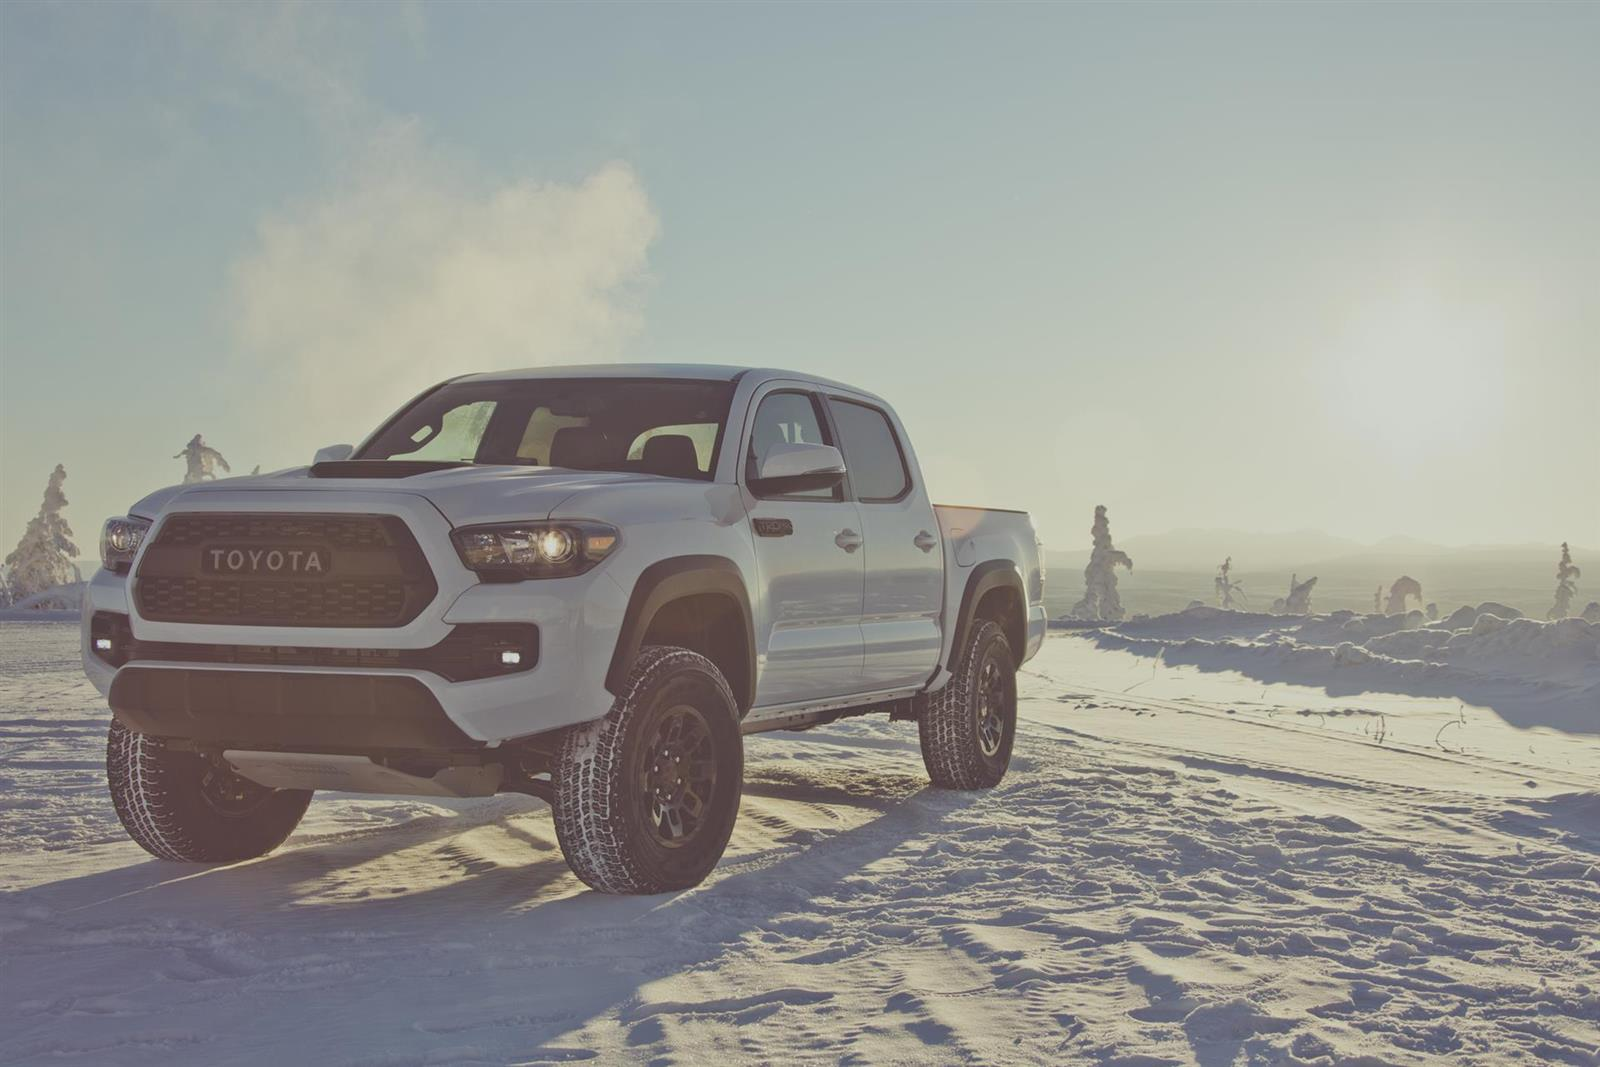 2016 toyota tacoma trd pro images photo toyota tacoma trd pro 2016 038. Black Bedroom Furniture Sets. Home Design Ideas